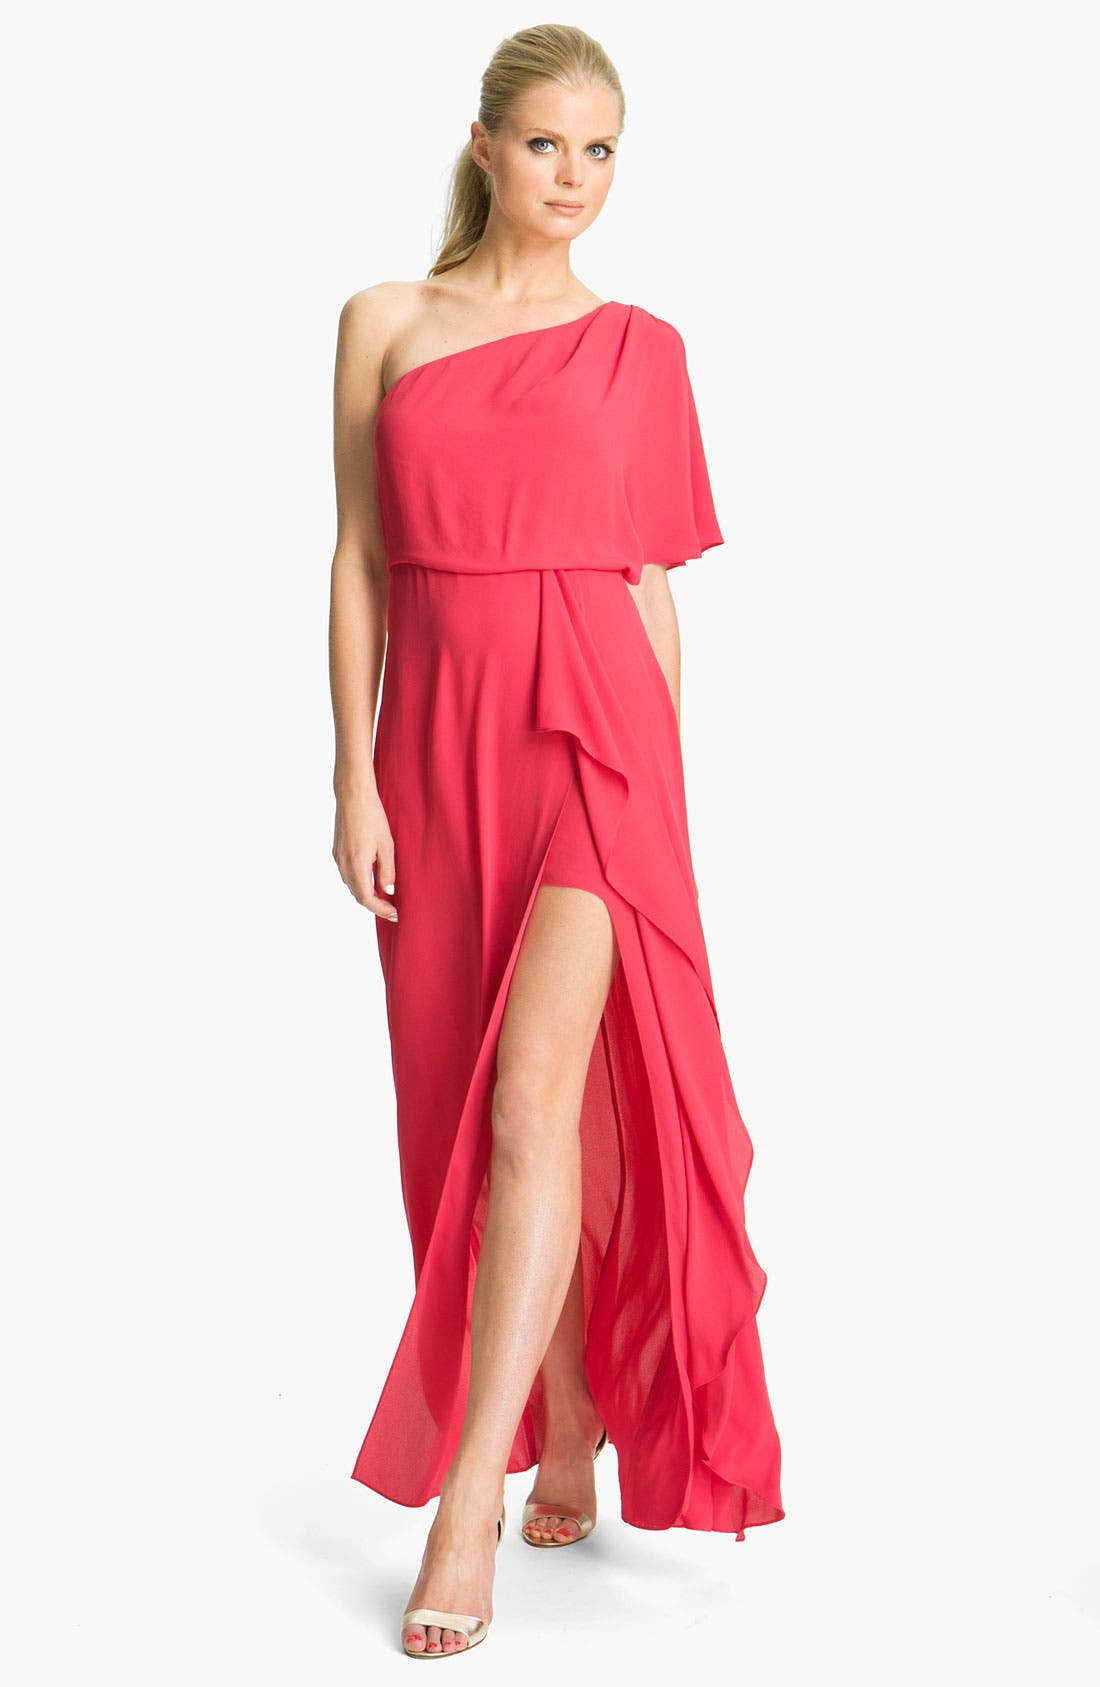 Alternate Image 1 Selected - BCBGMAXAZRIA 'Kendal' One Shoulder Chiffon Gown